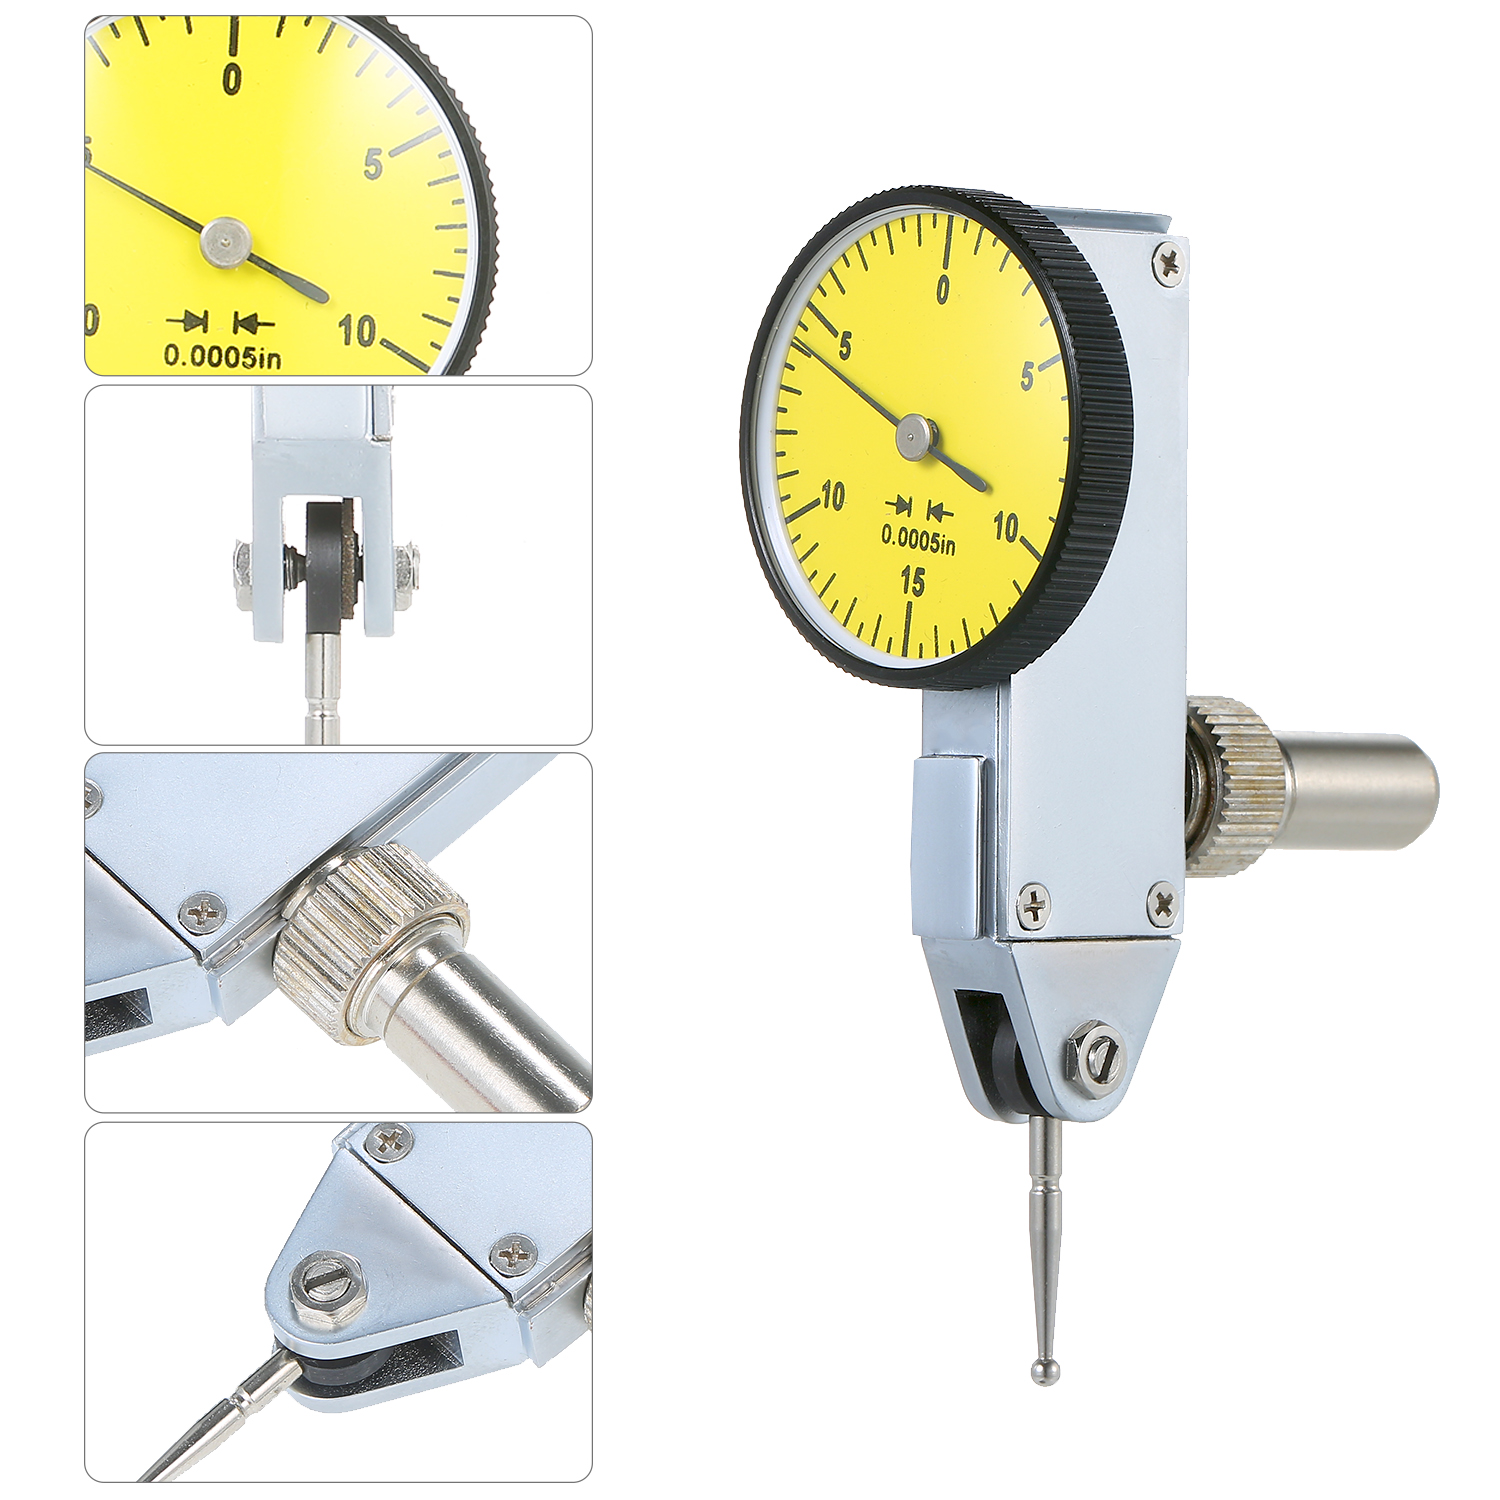 """Precision 0.030/"""" Test Indicator 0 0005/"""" GR Dial Reading 0-15-0 Yellow New"""